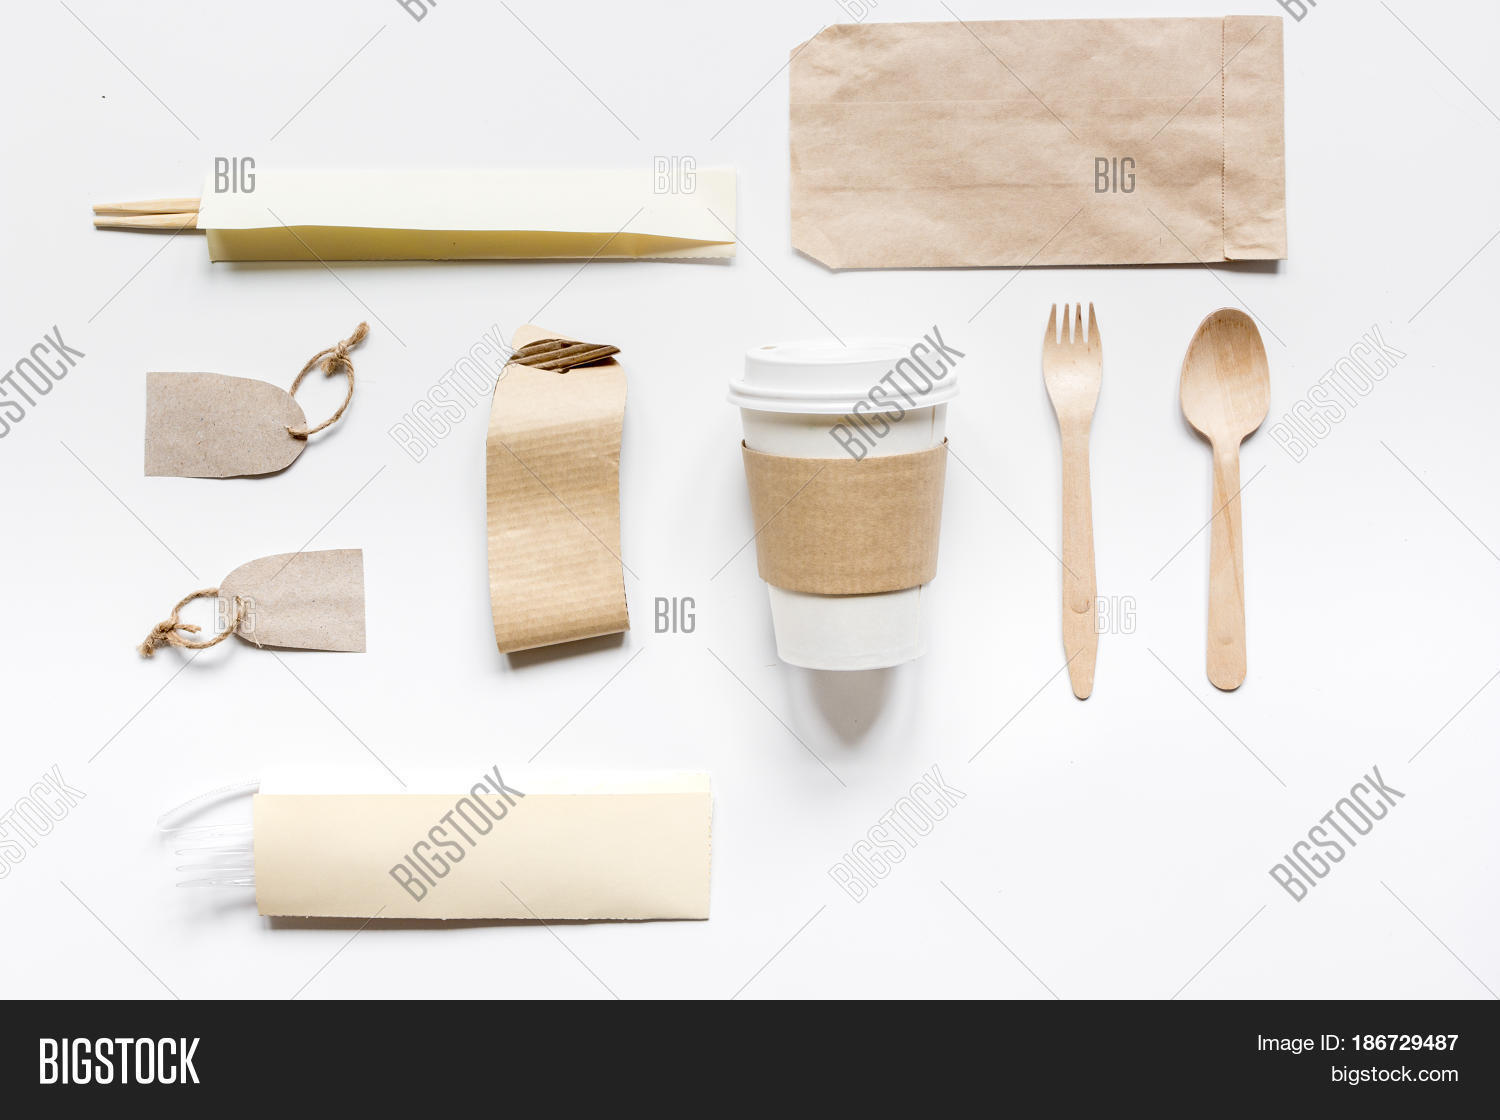 Food Delivery Service Image Photo Free Trial Bigstock